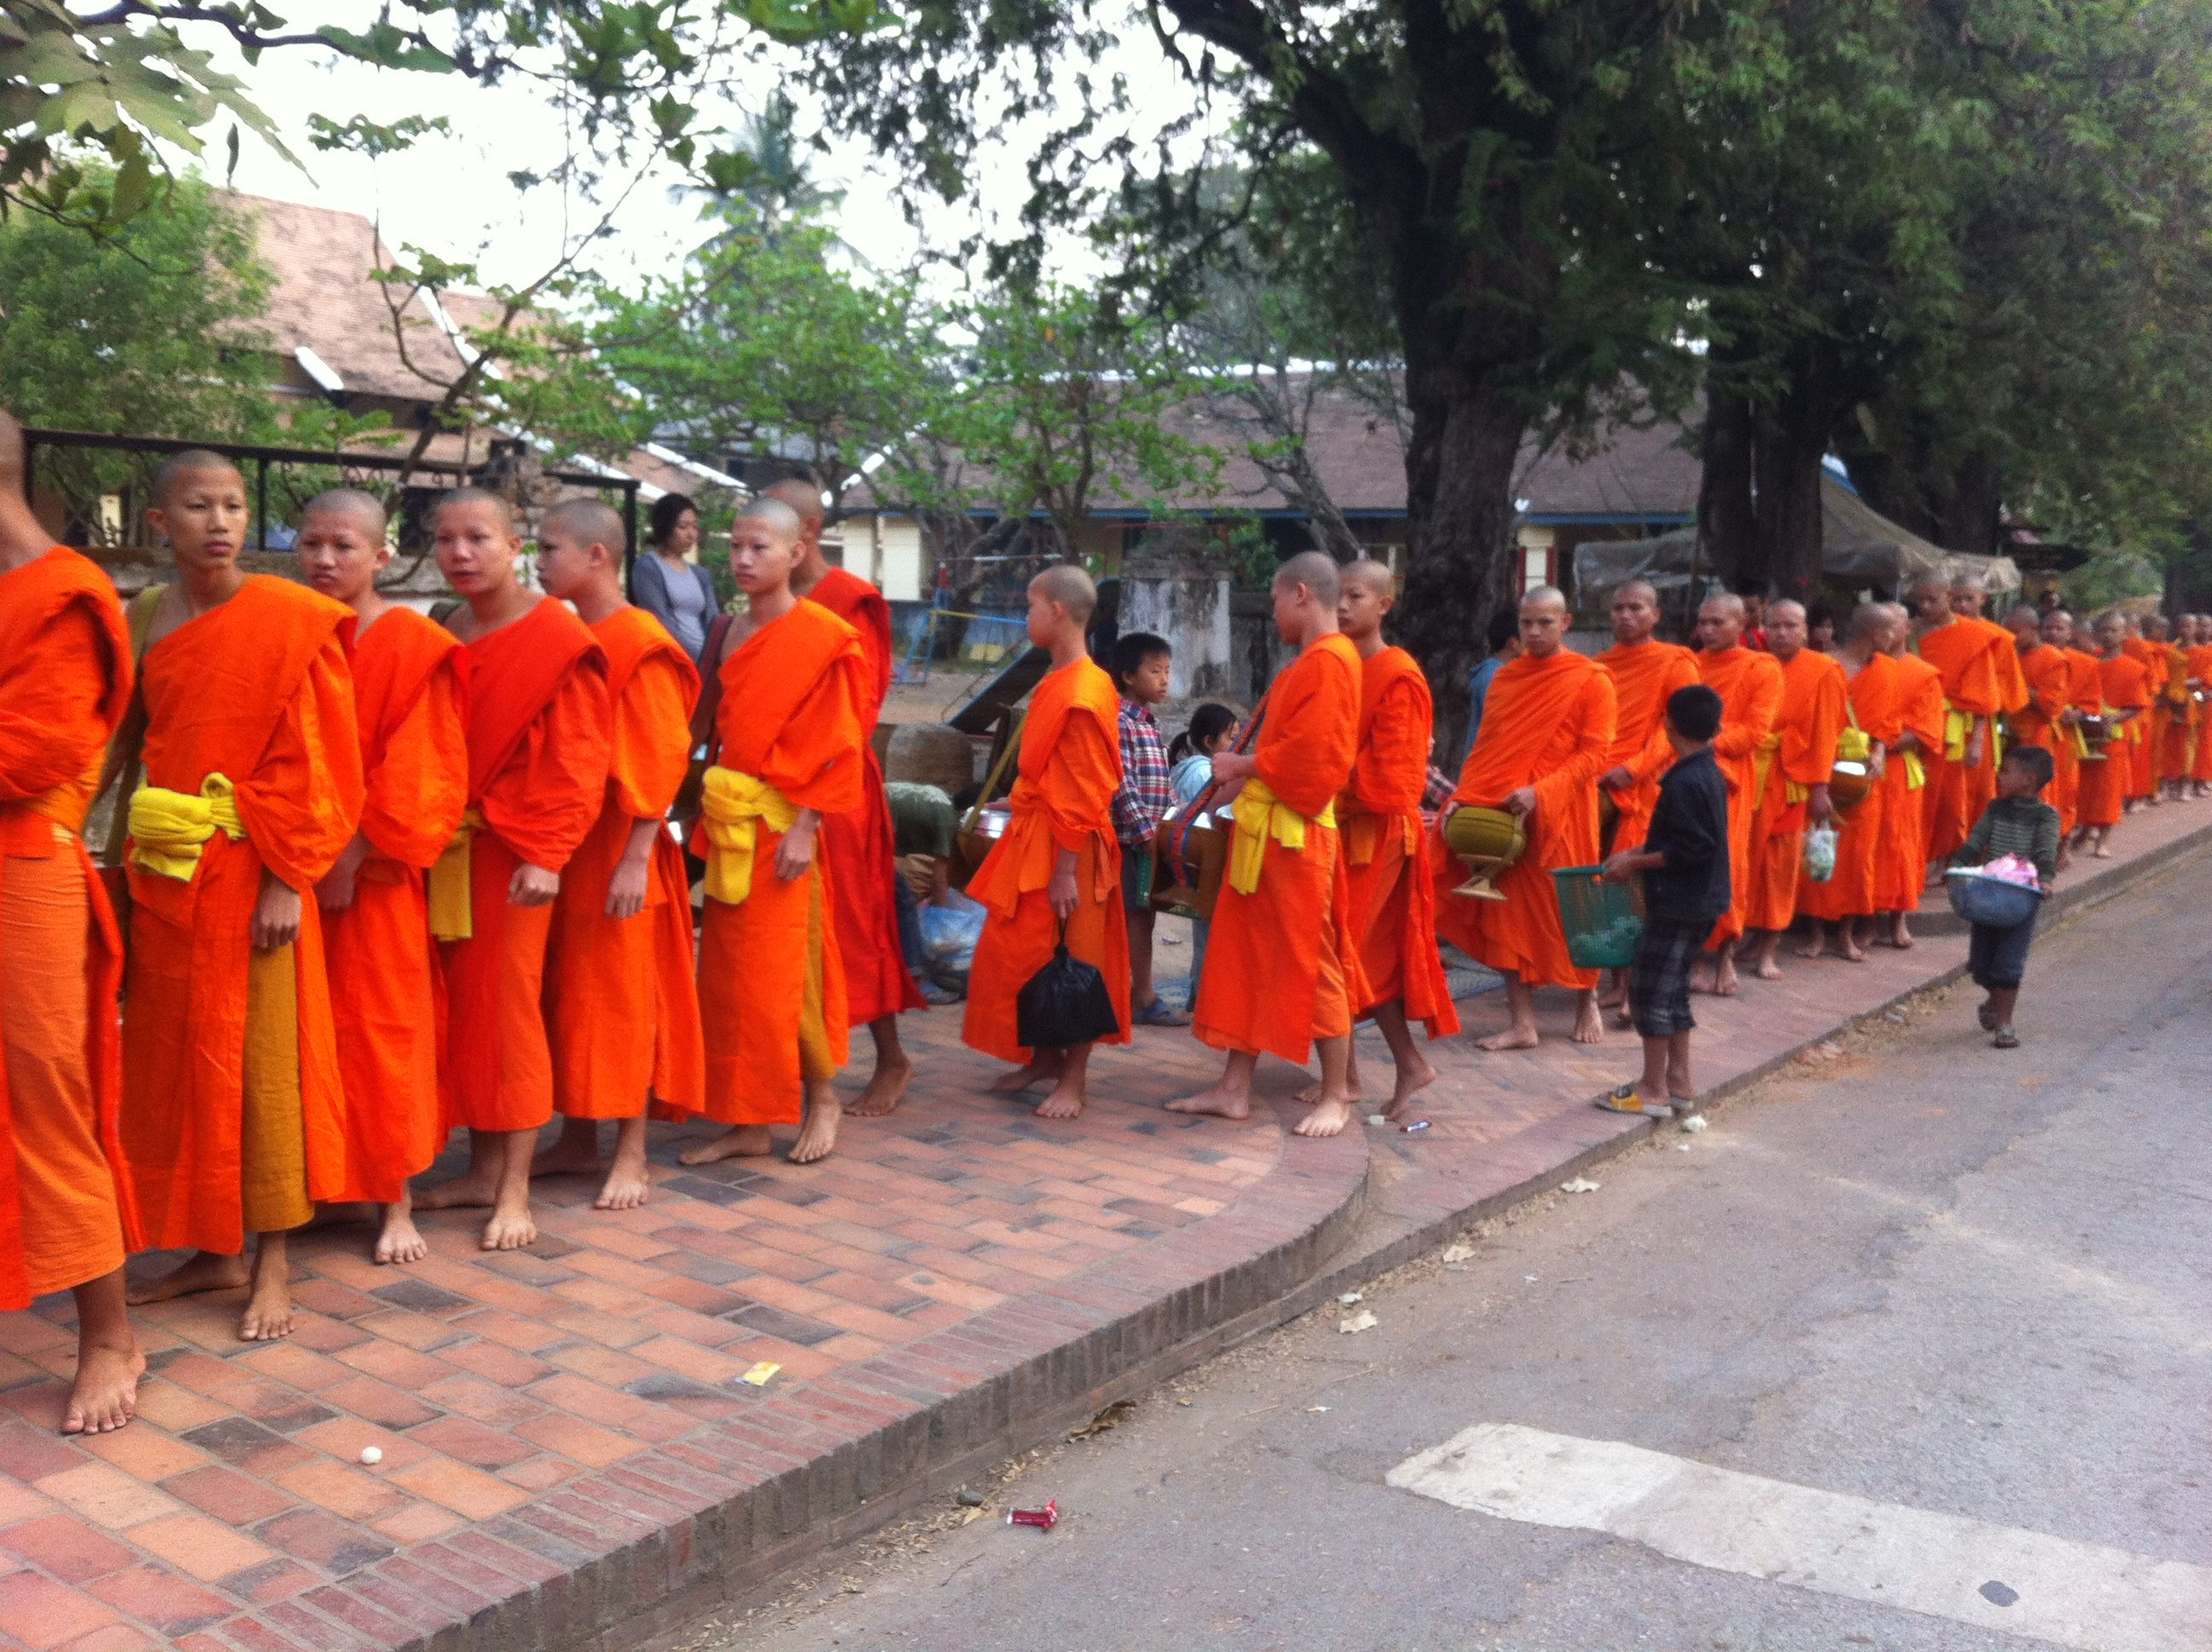 Up before day break in Luang Prabang to give offerings to the Monks.  Part of my 2013 South East Asia trip.